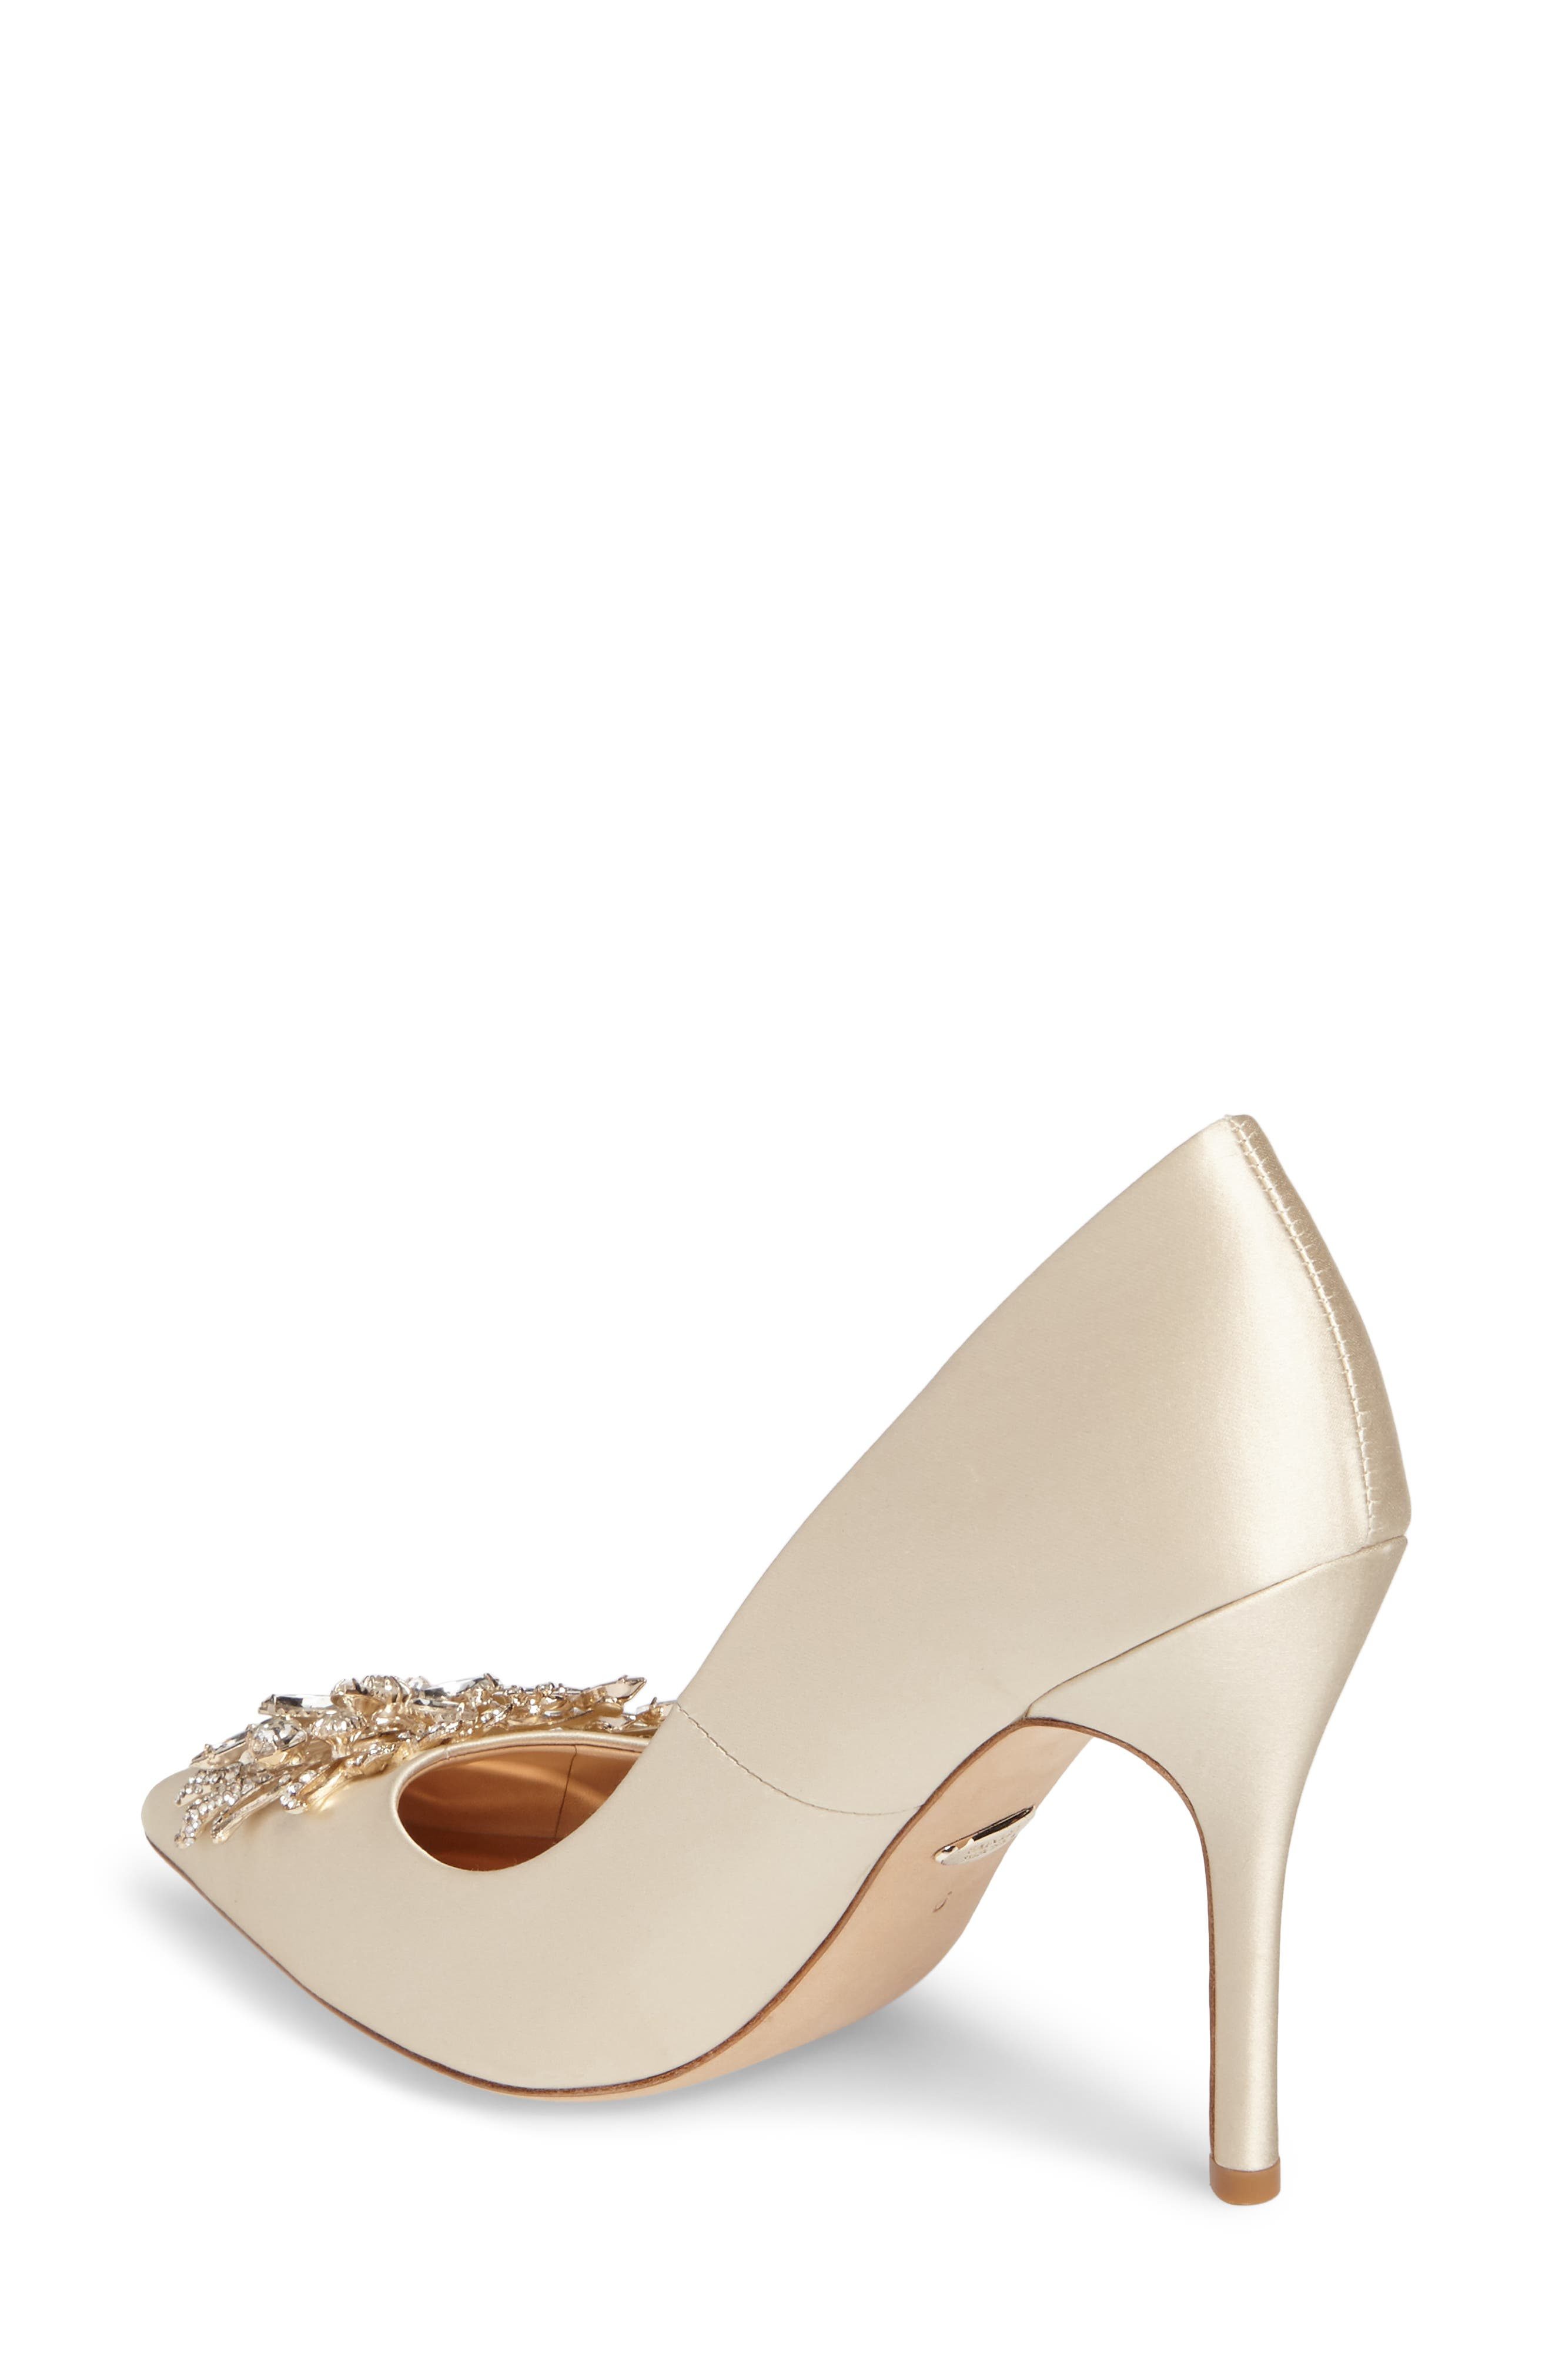 Marcela Pointy Toe Pump,                             Alternate thumbnail 2, color,                             Ivory Satin